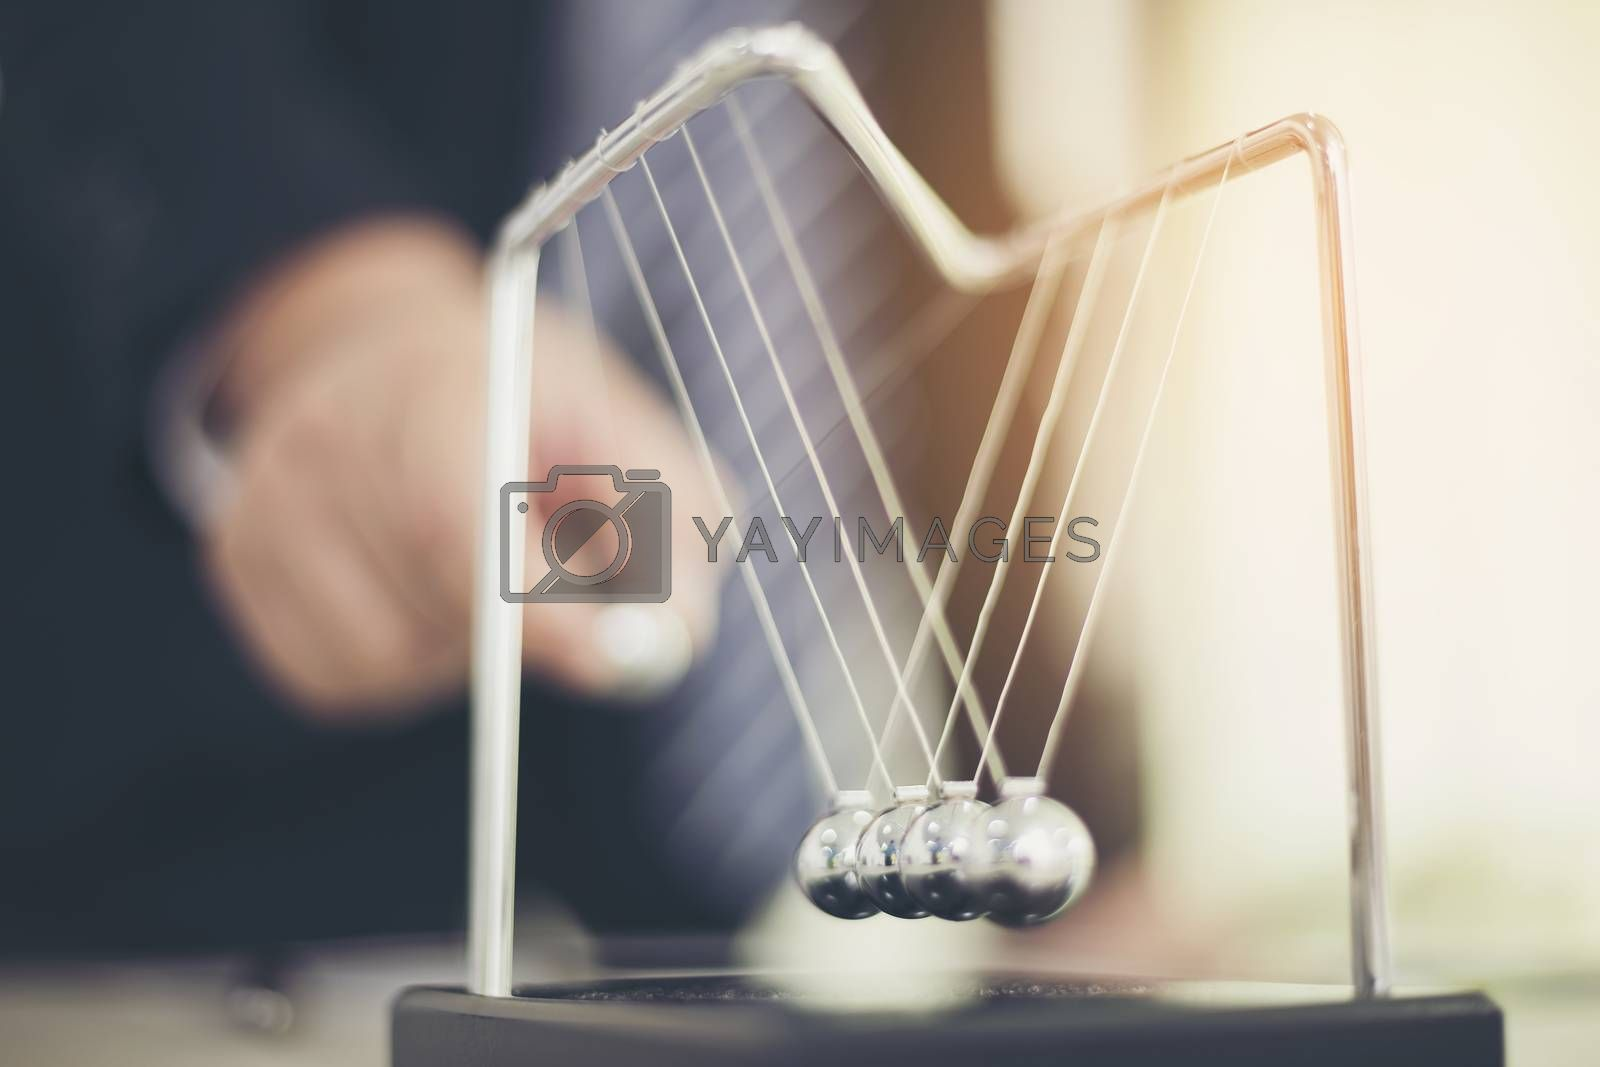 Executives stand Newton's cradle ball, deliberately deliberate to decide on the work.